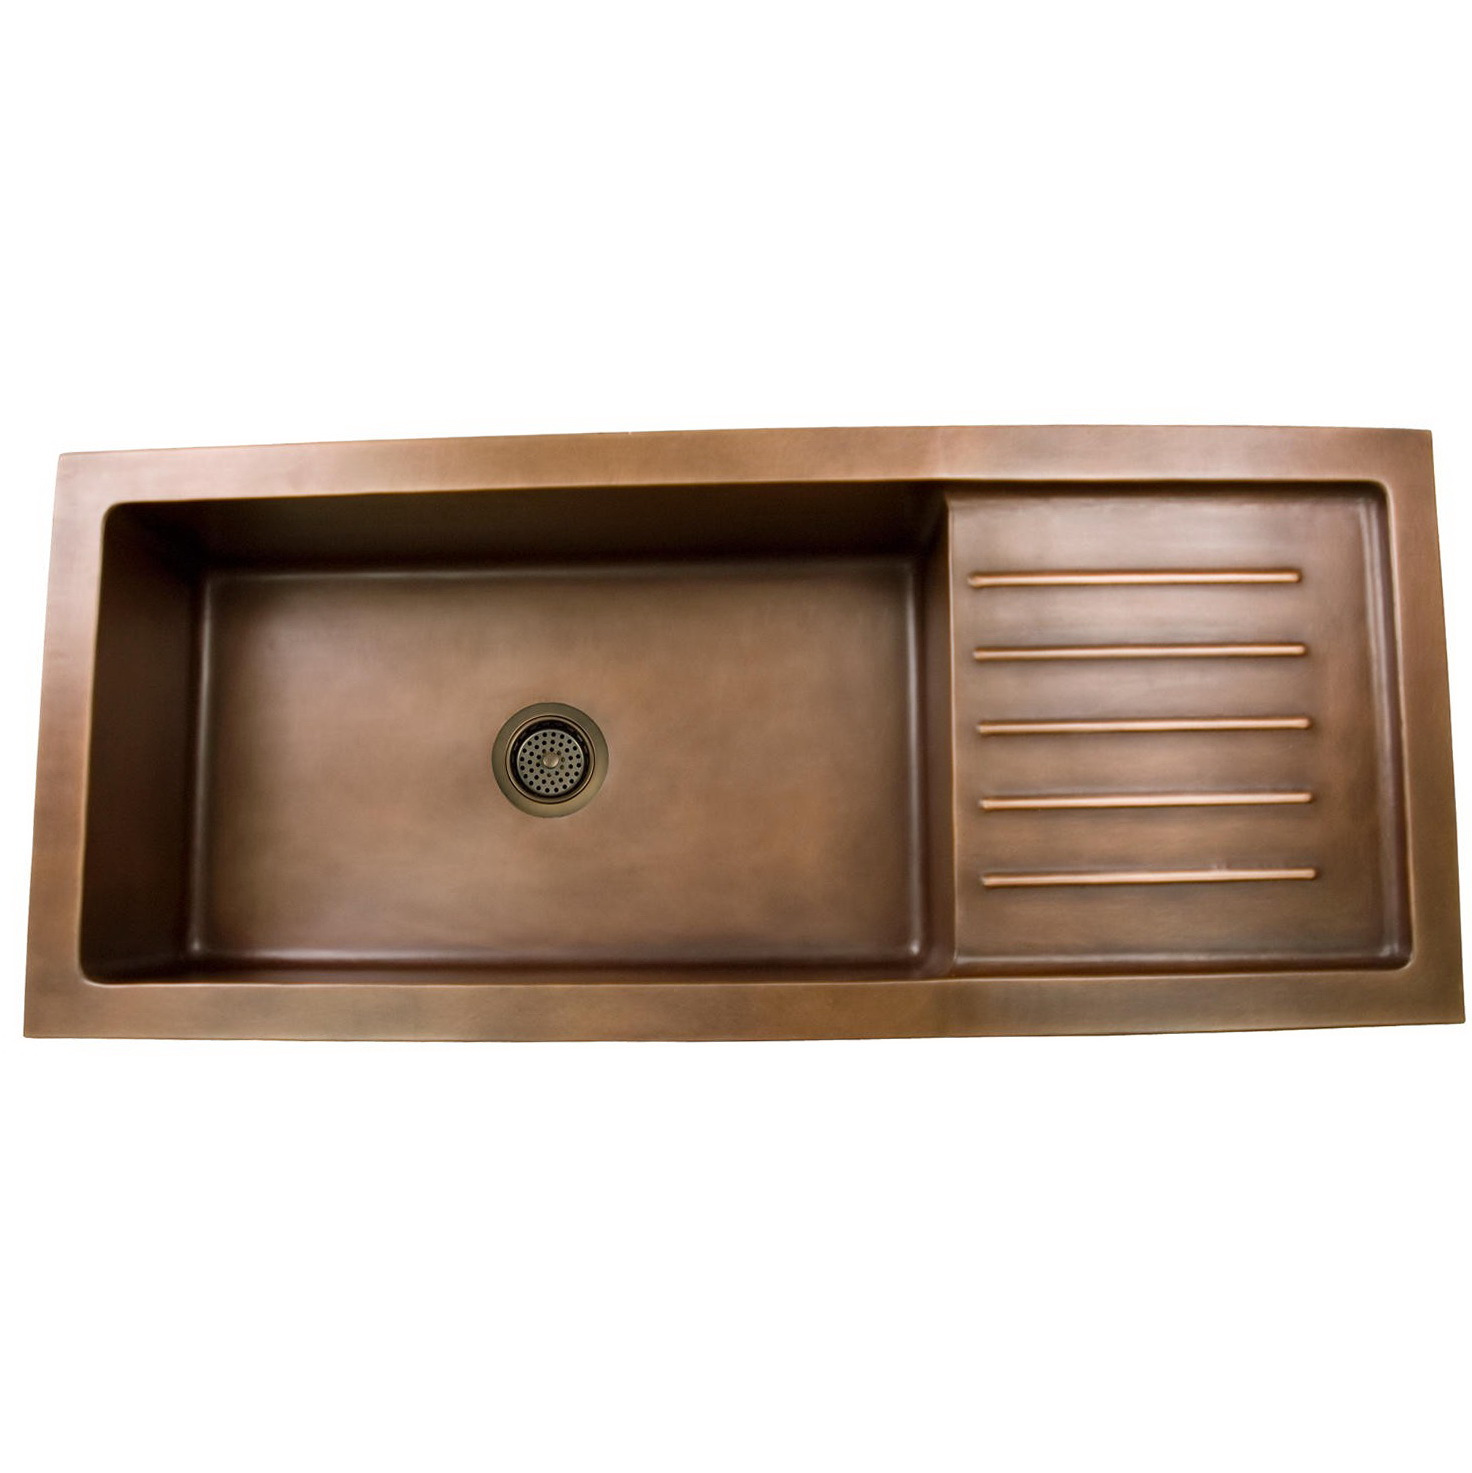 Copper Kitchen Sinks Undermount